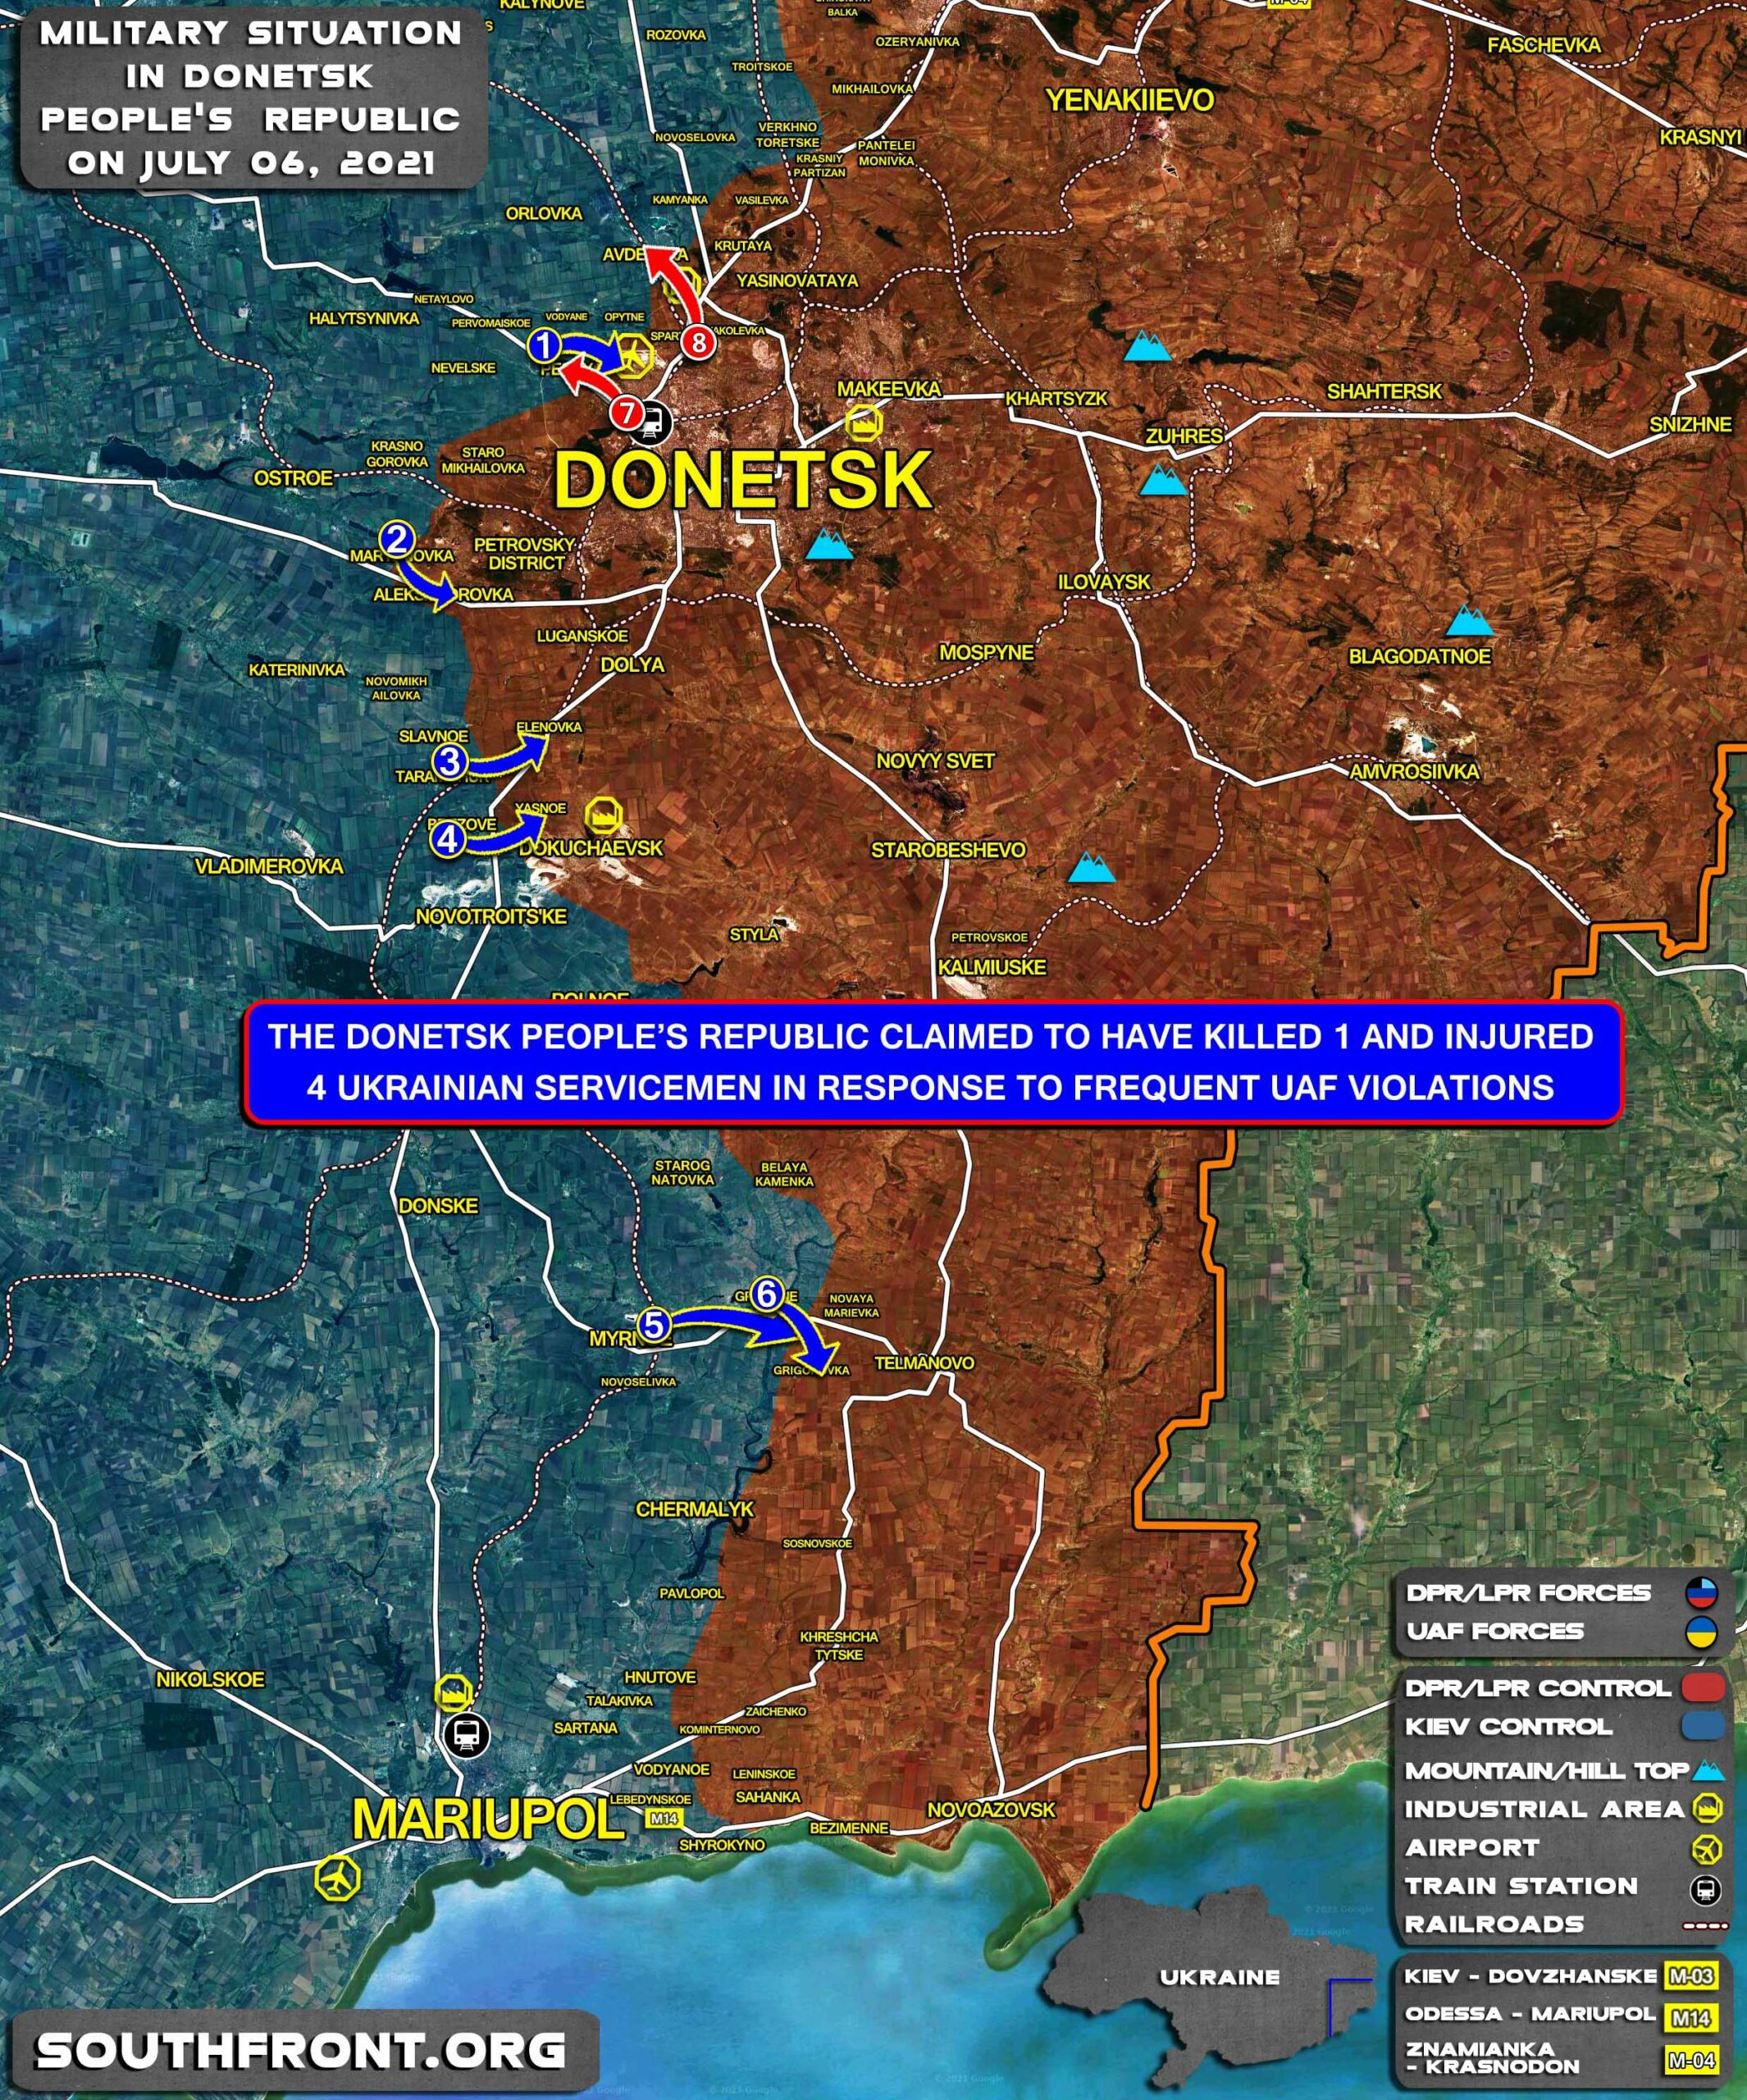 Military Situation In Donetsk People's Republic On July 6, 2021 (Map Update)